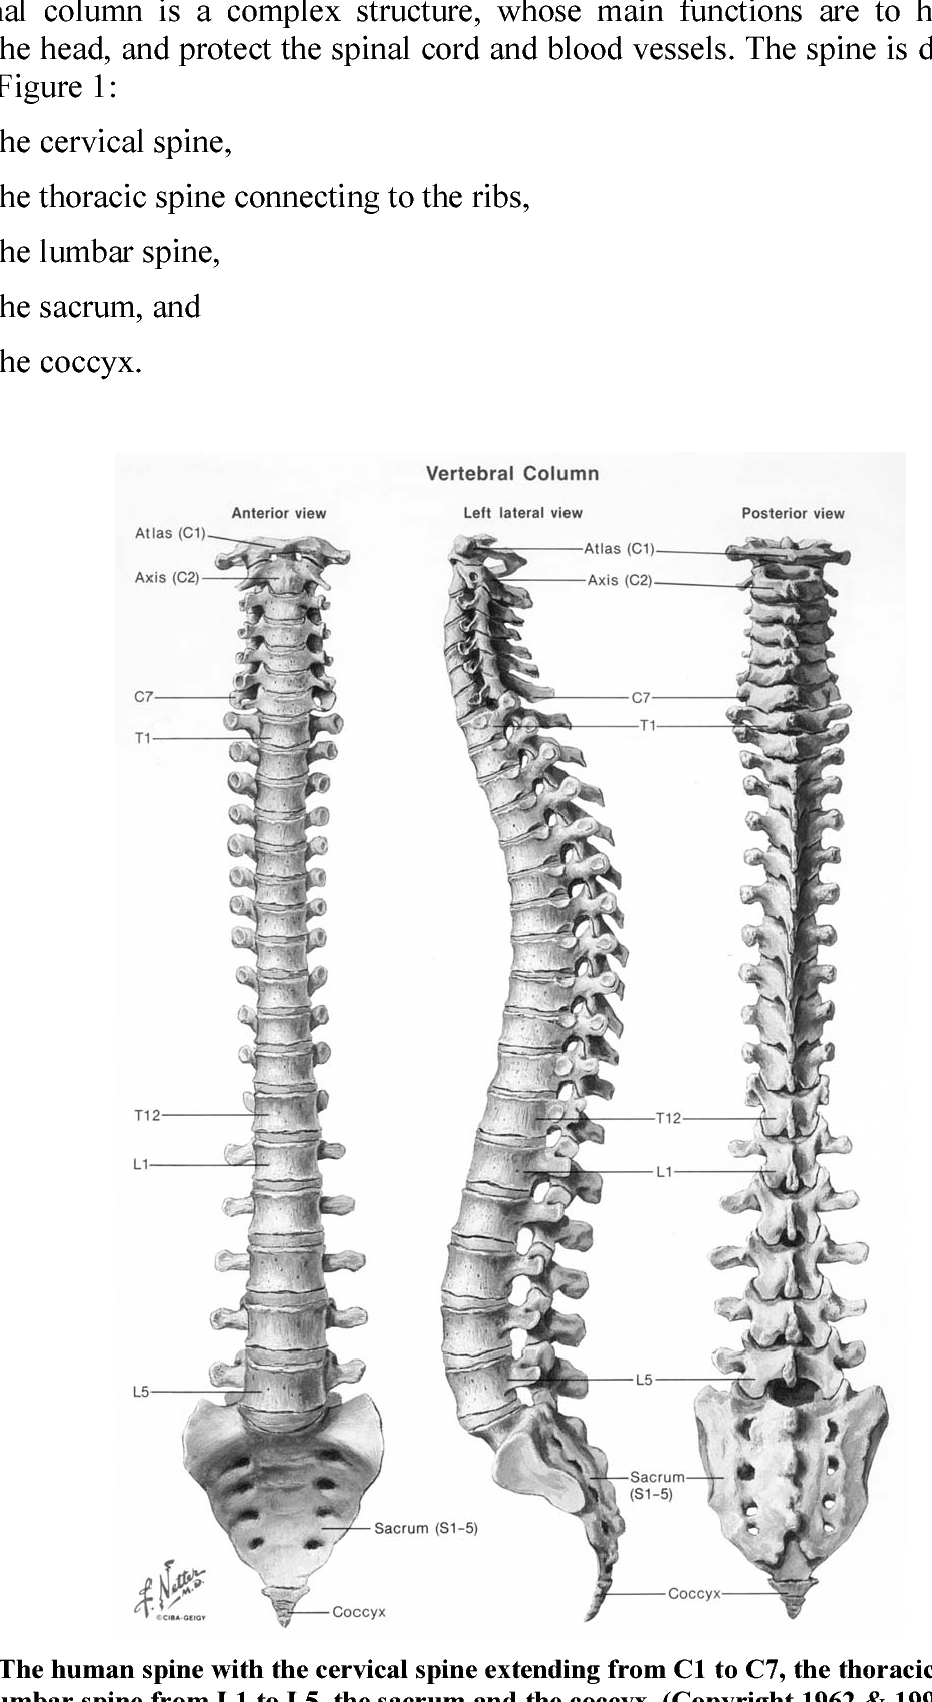 hight resolution of figure 1 the human spine with the cervical spine extending from c1 to c7